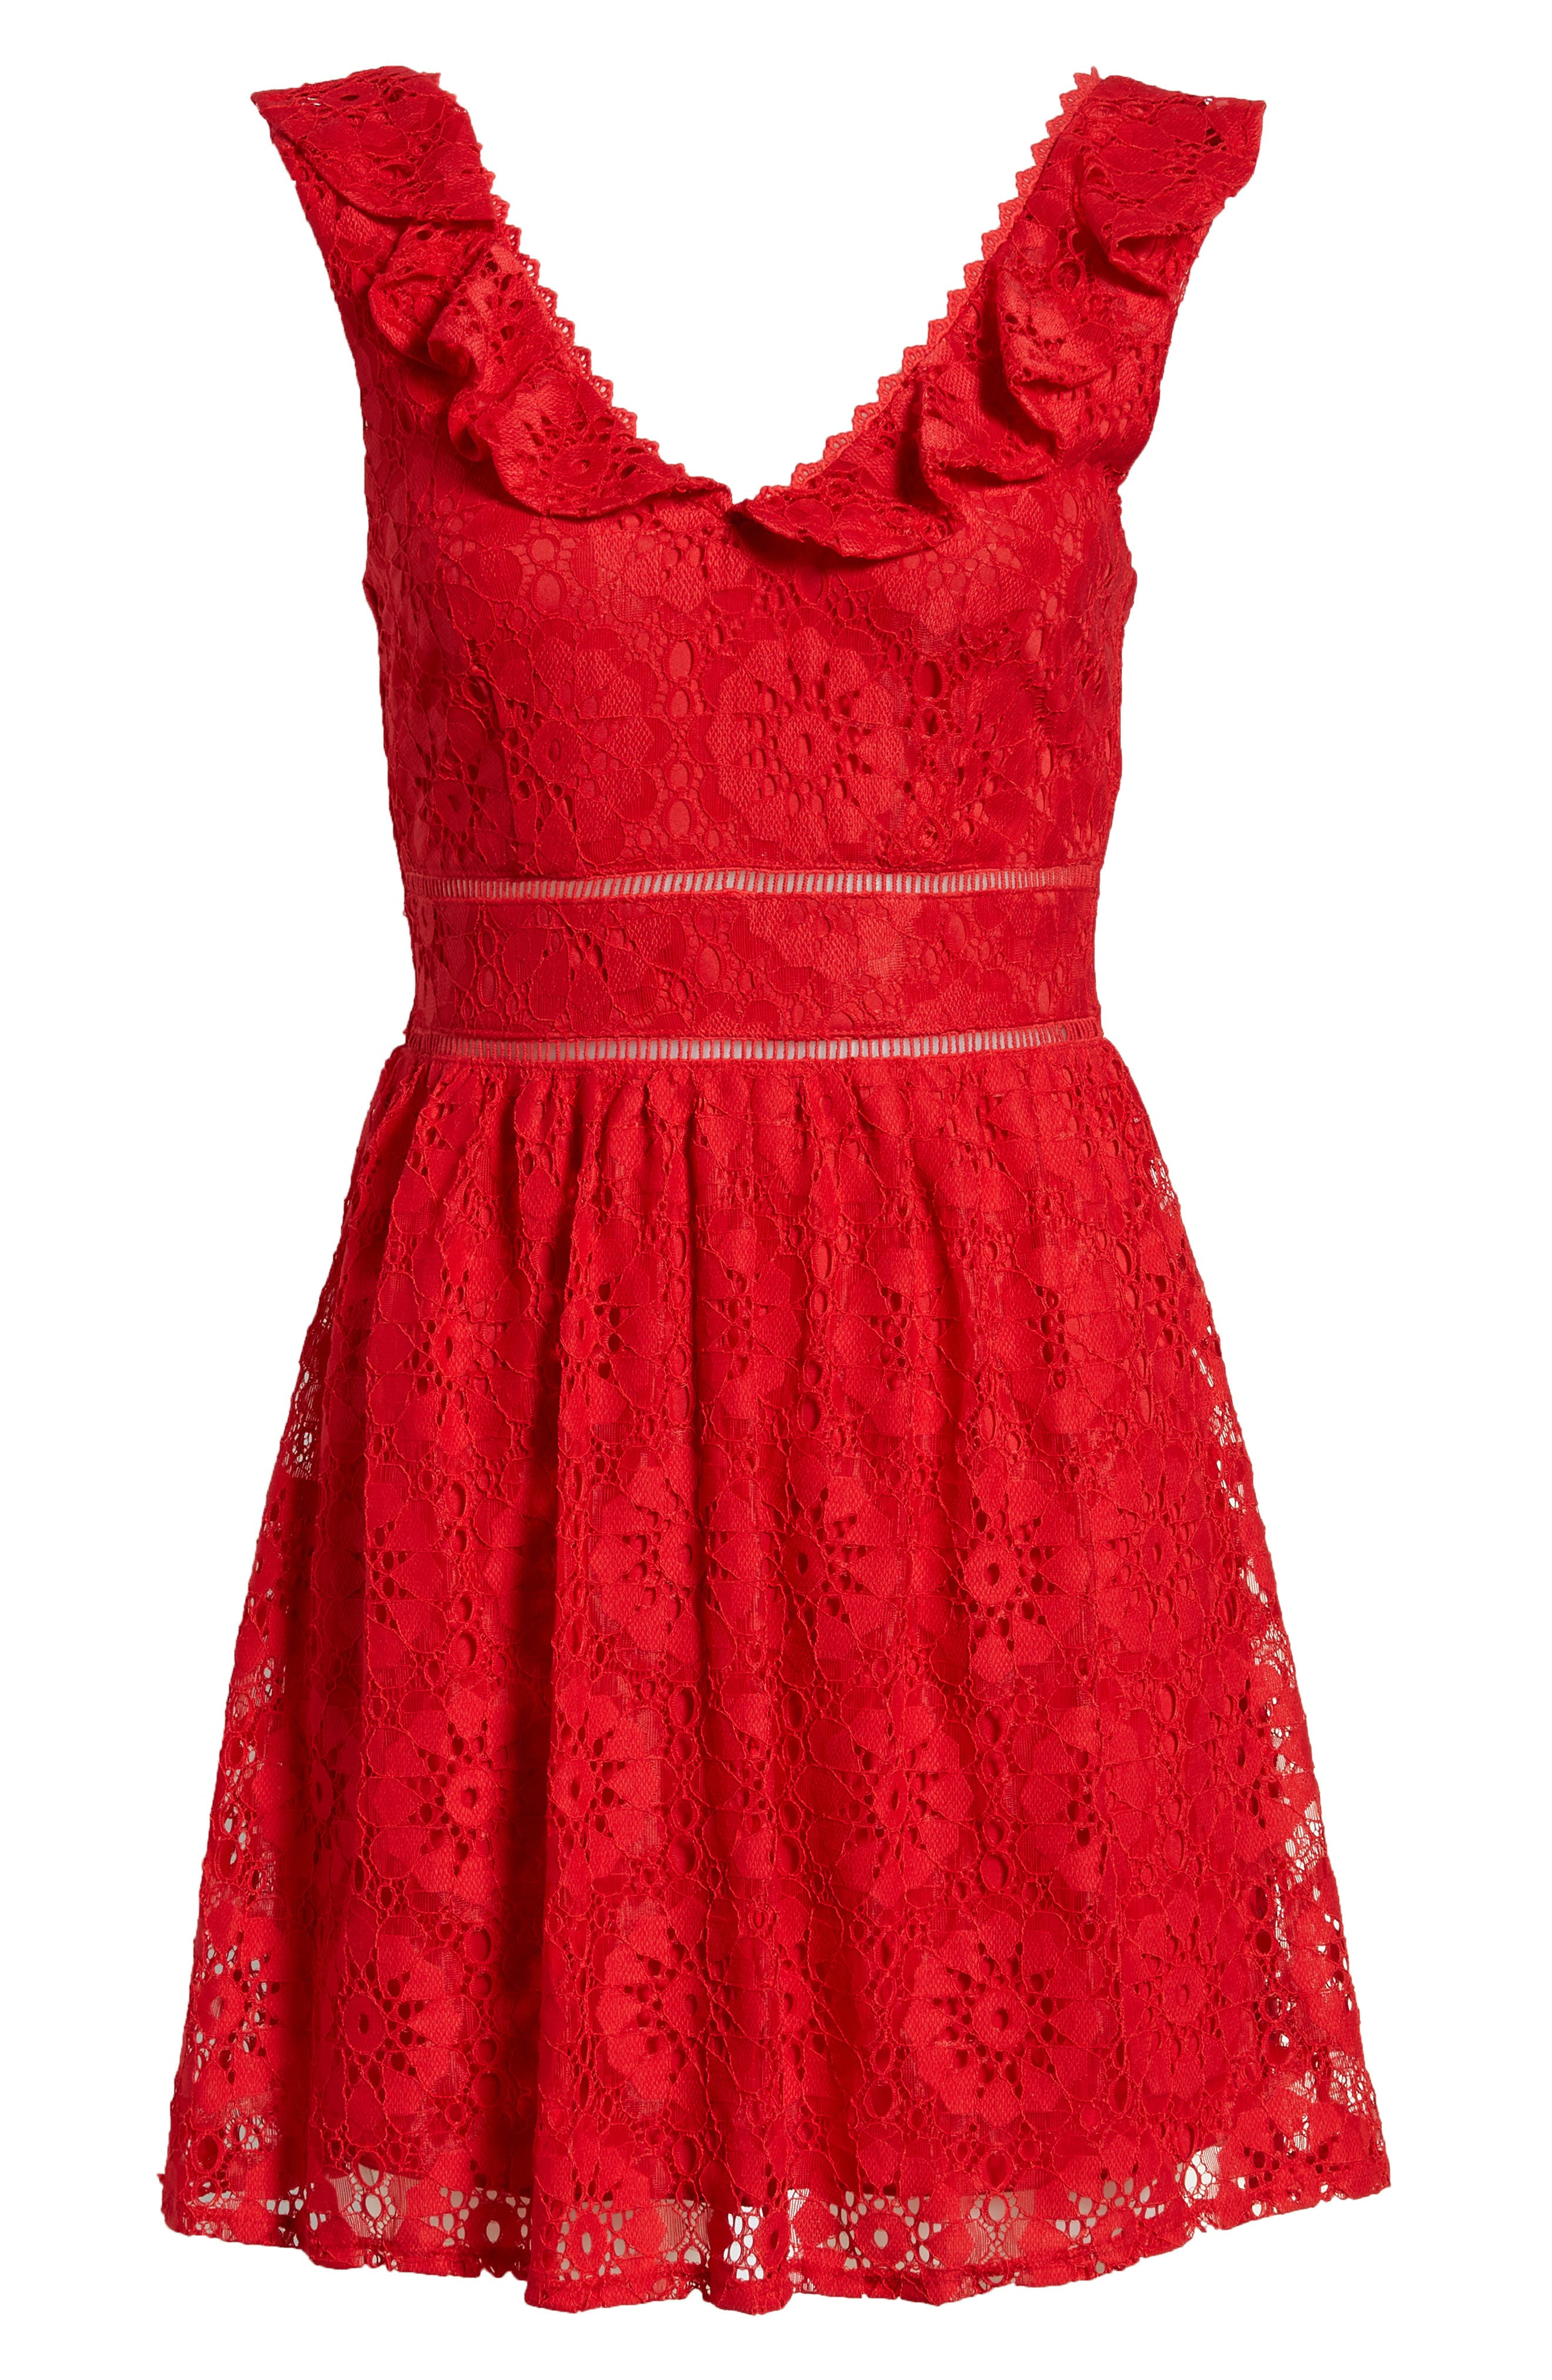 SPEECHLESS, Lace Ruffle Neck Skater Dress, Alternate thumbnail 7, color, RED